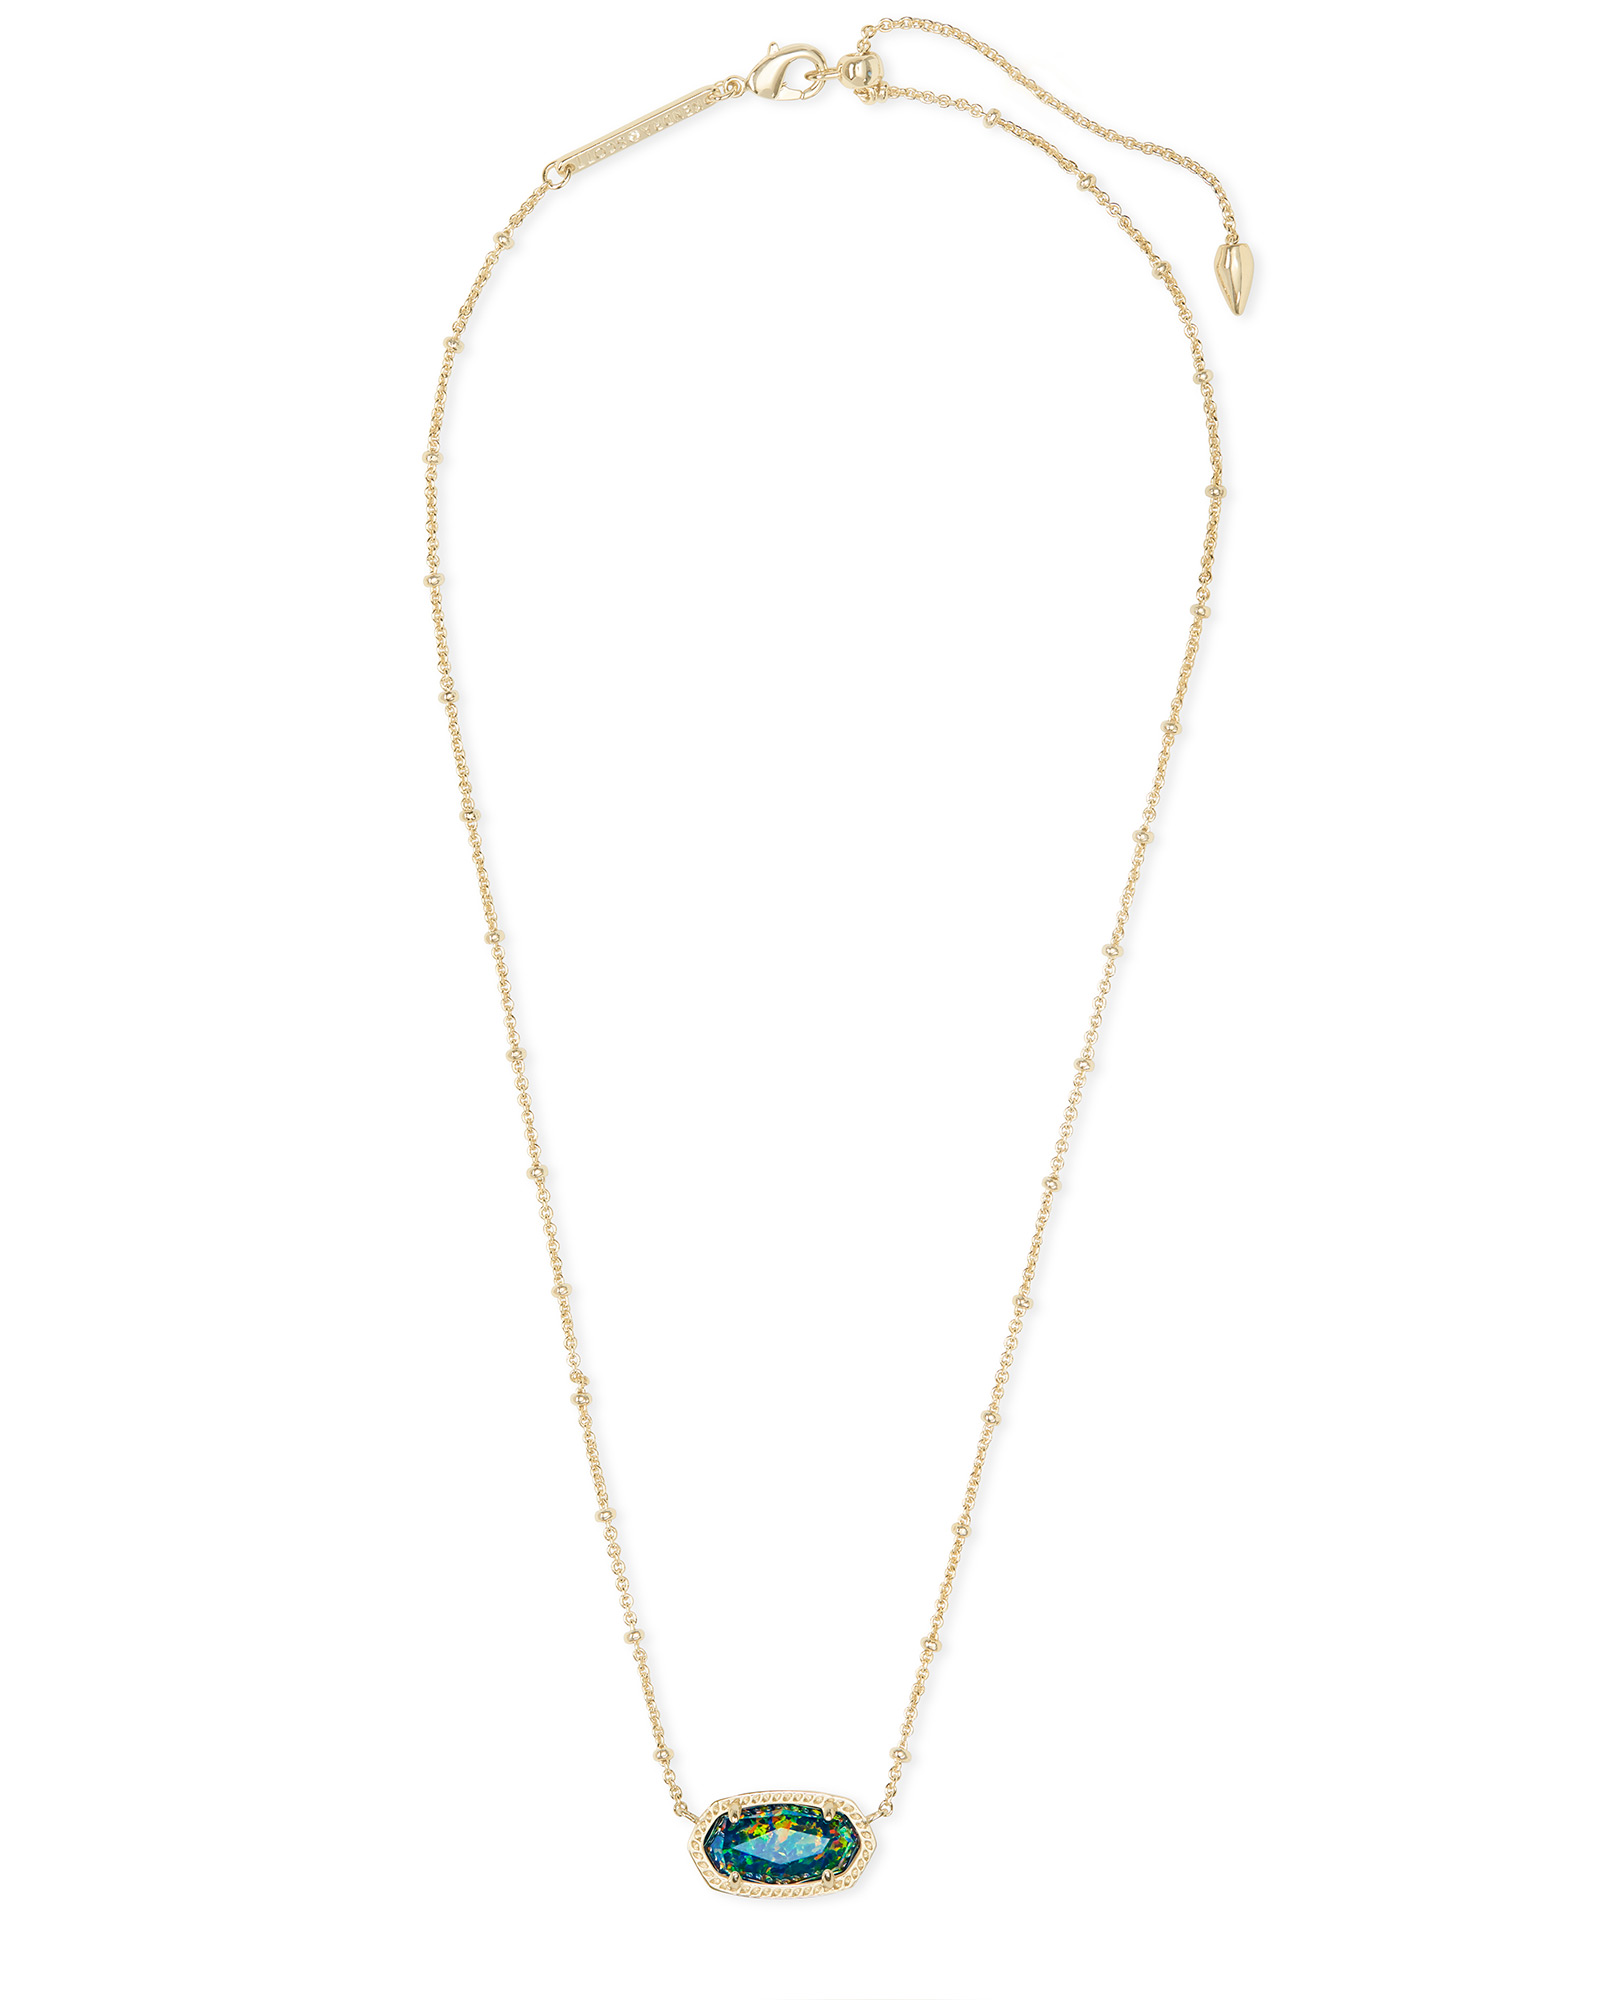 Elisa Gold Satellite Pendant Necklace in Midnight Kyocera Opal Illusion